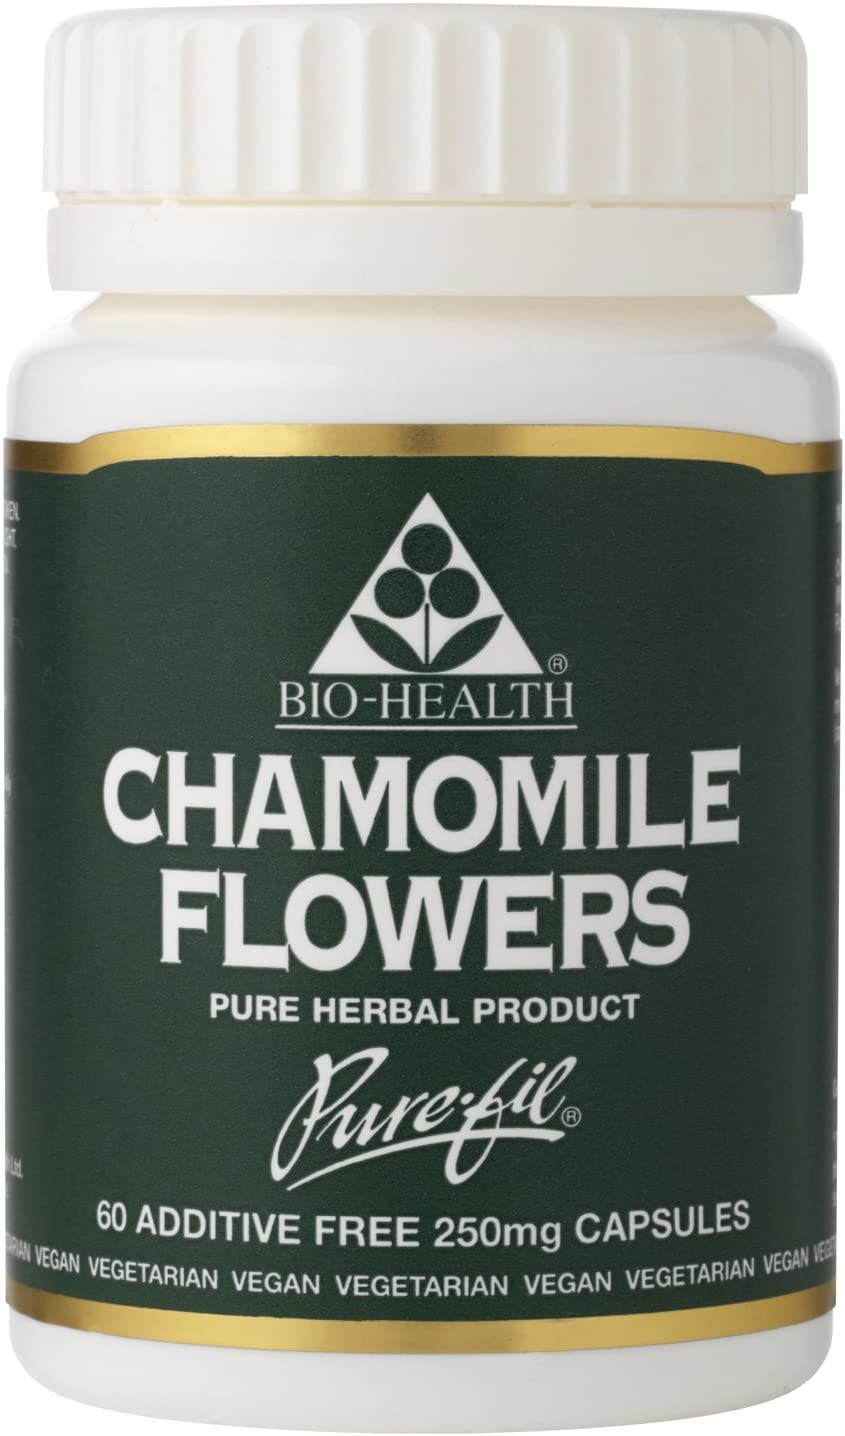 Bio-Health Chamomile Flowers 250 mg Powdered Herb 60 caps